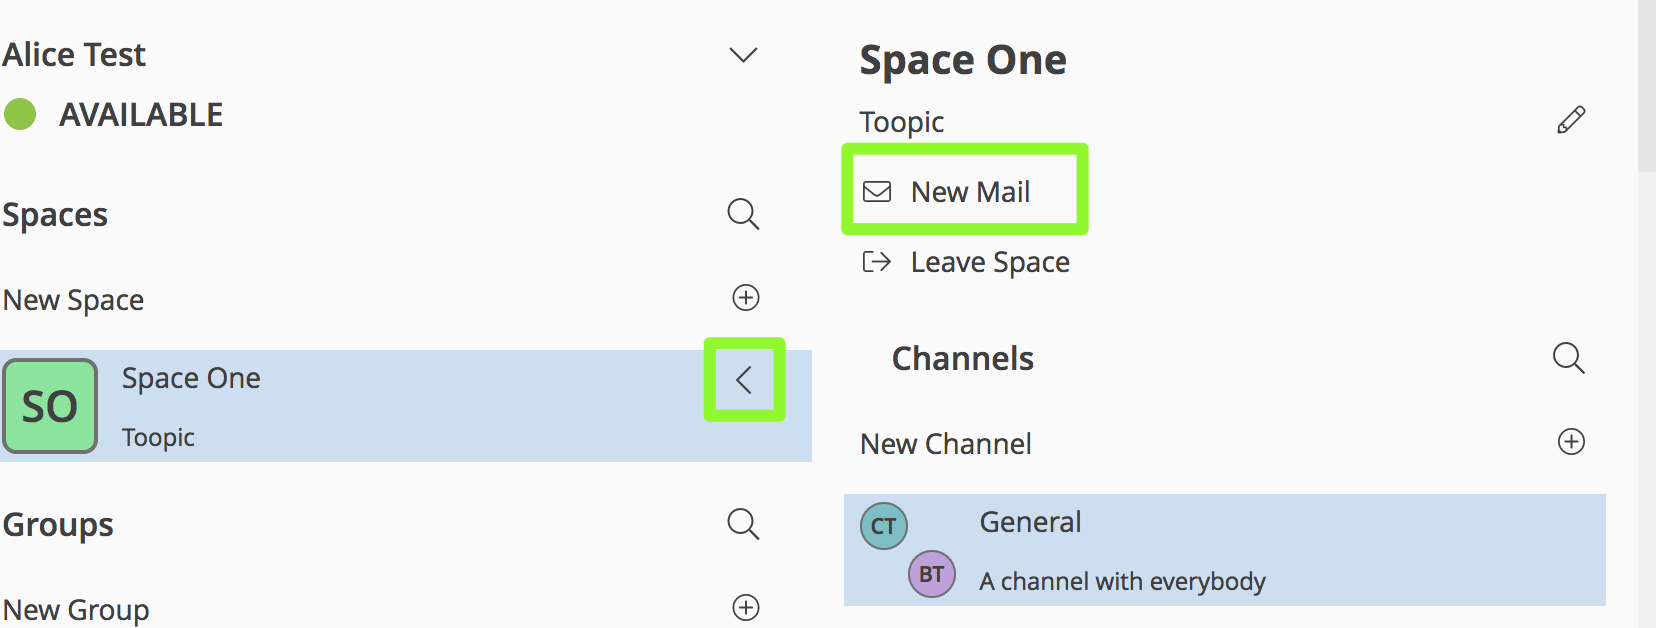 New mail space 1.png